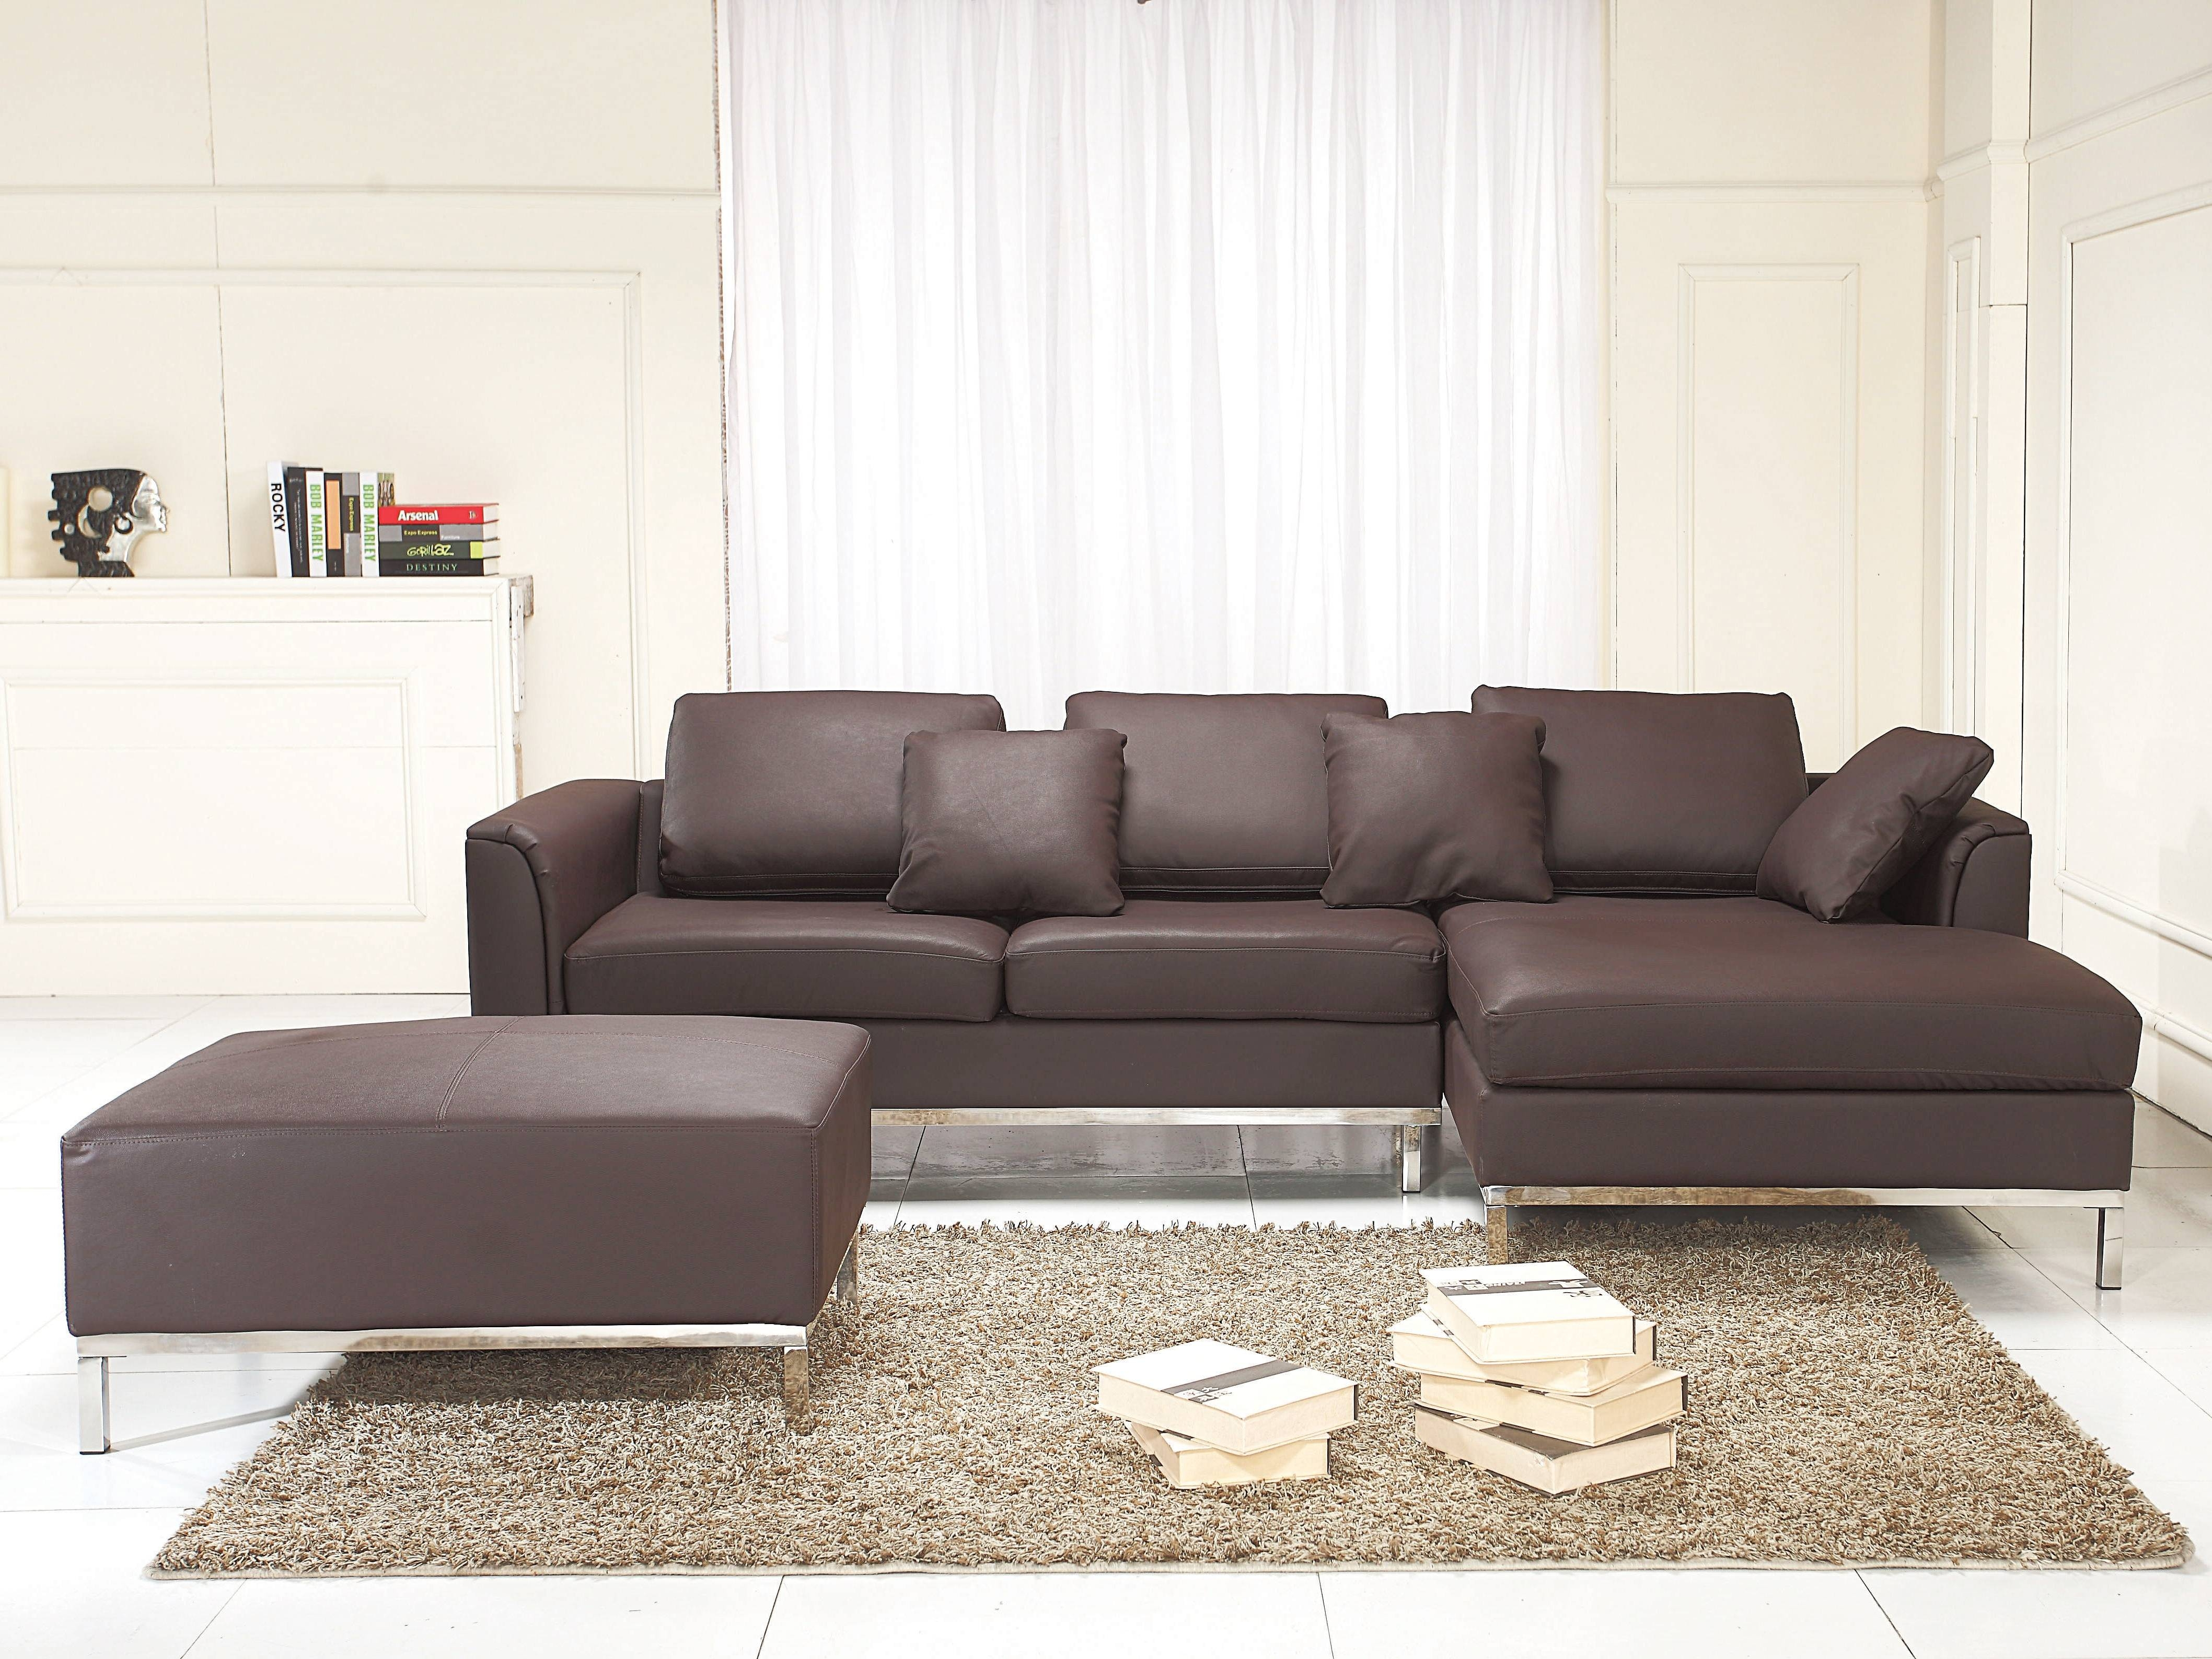 New Real Leather Sectional Sofas 66 For Your Seagrass Sectional Throughout Seagrass Sectional Sofas (View 8 of 15)